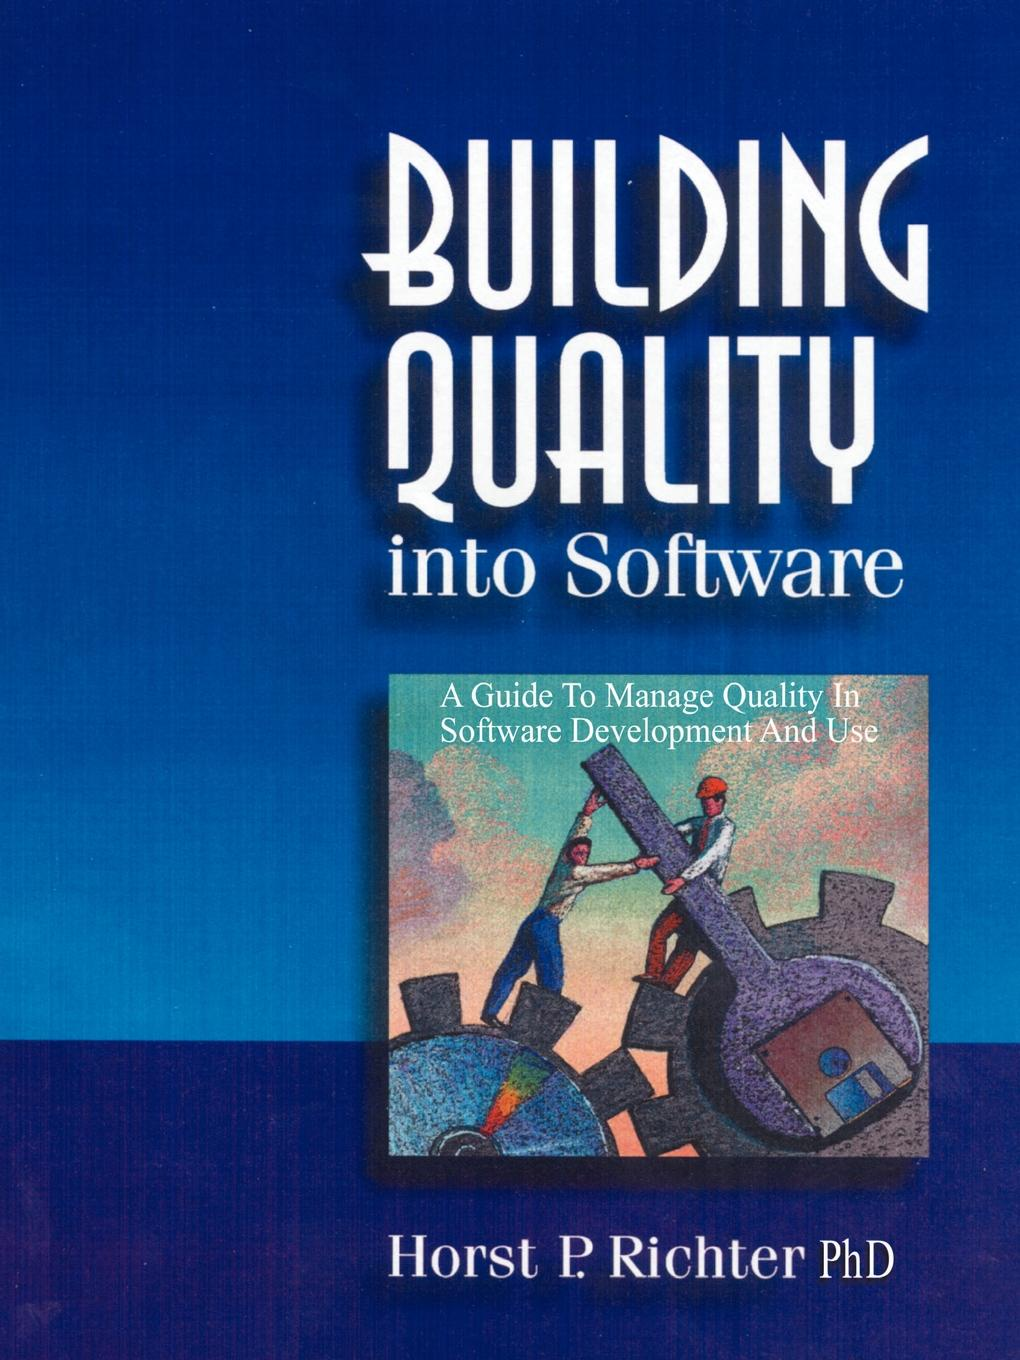 Horst P. Richter Building Quality Into Software. A Guide to Manage in Software Development and Use